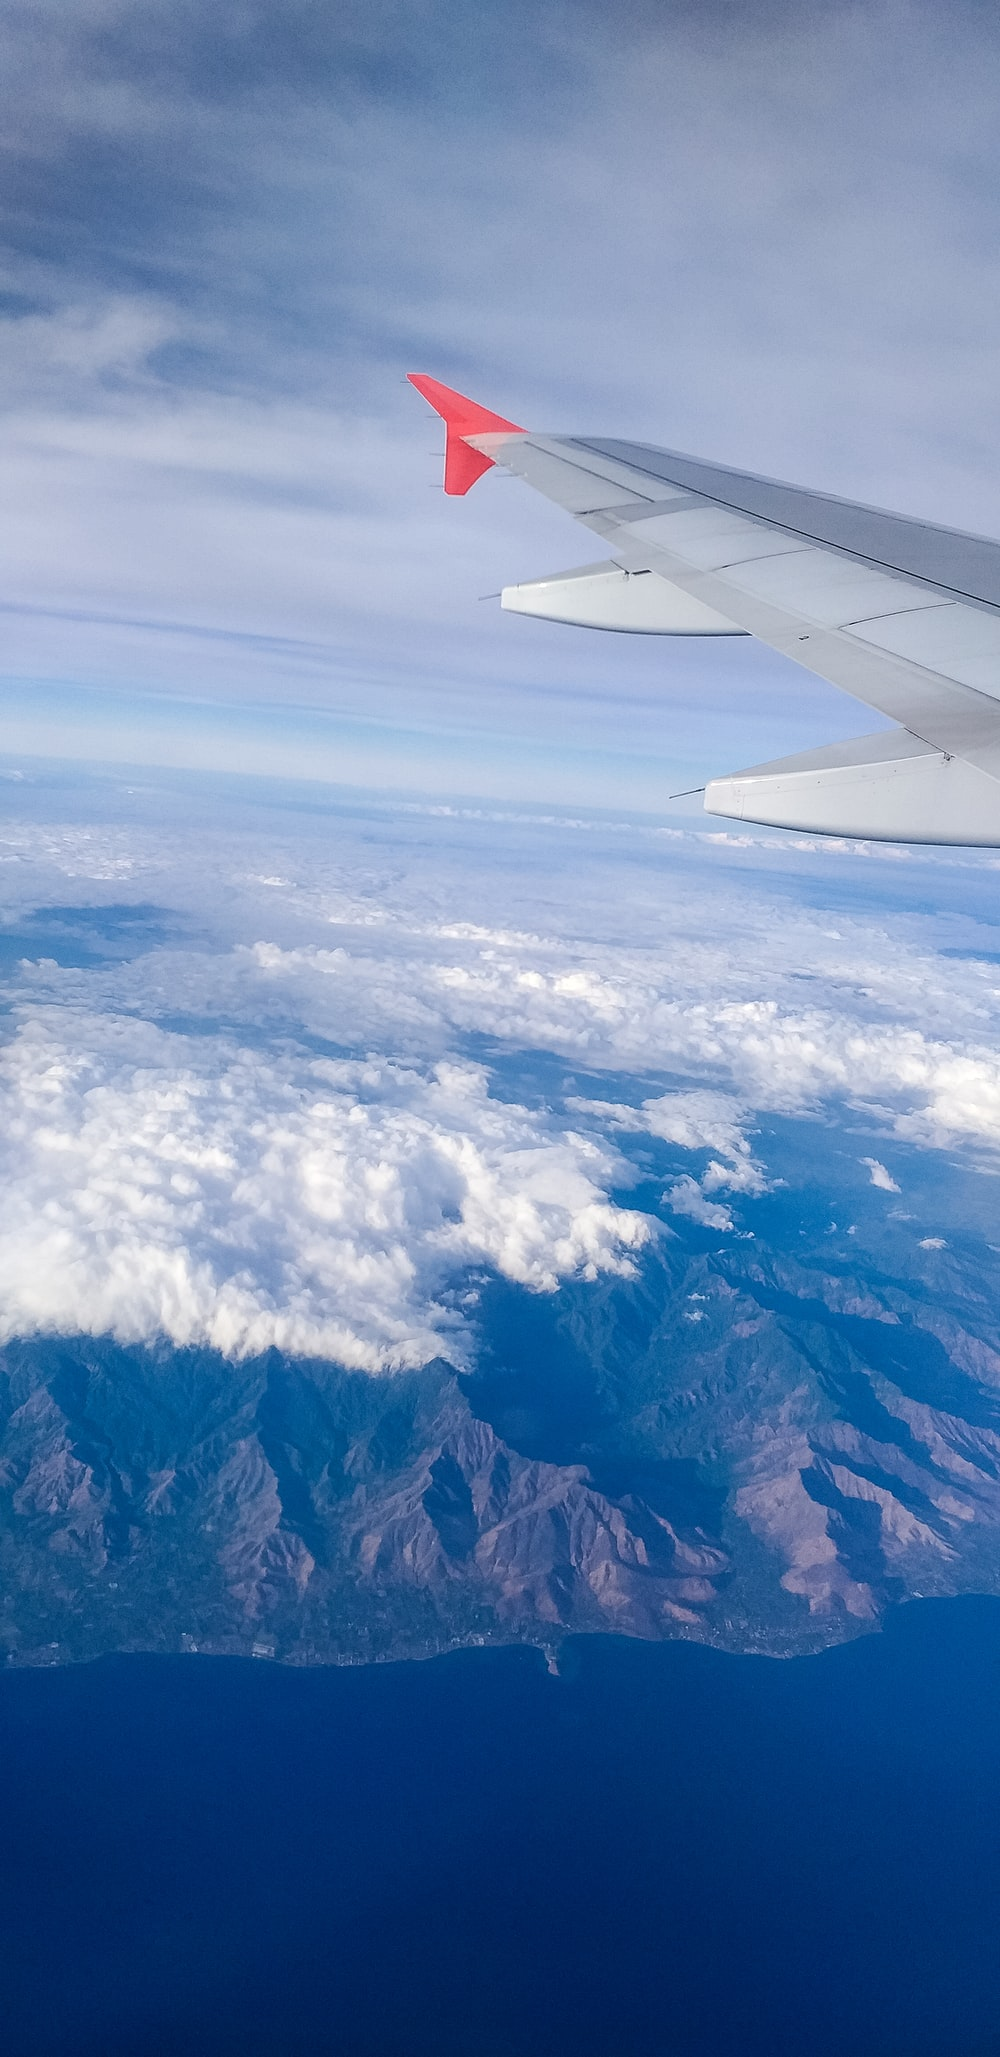 plane over mountains and cloud